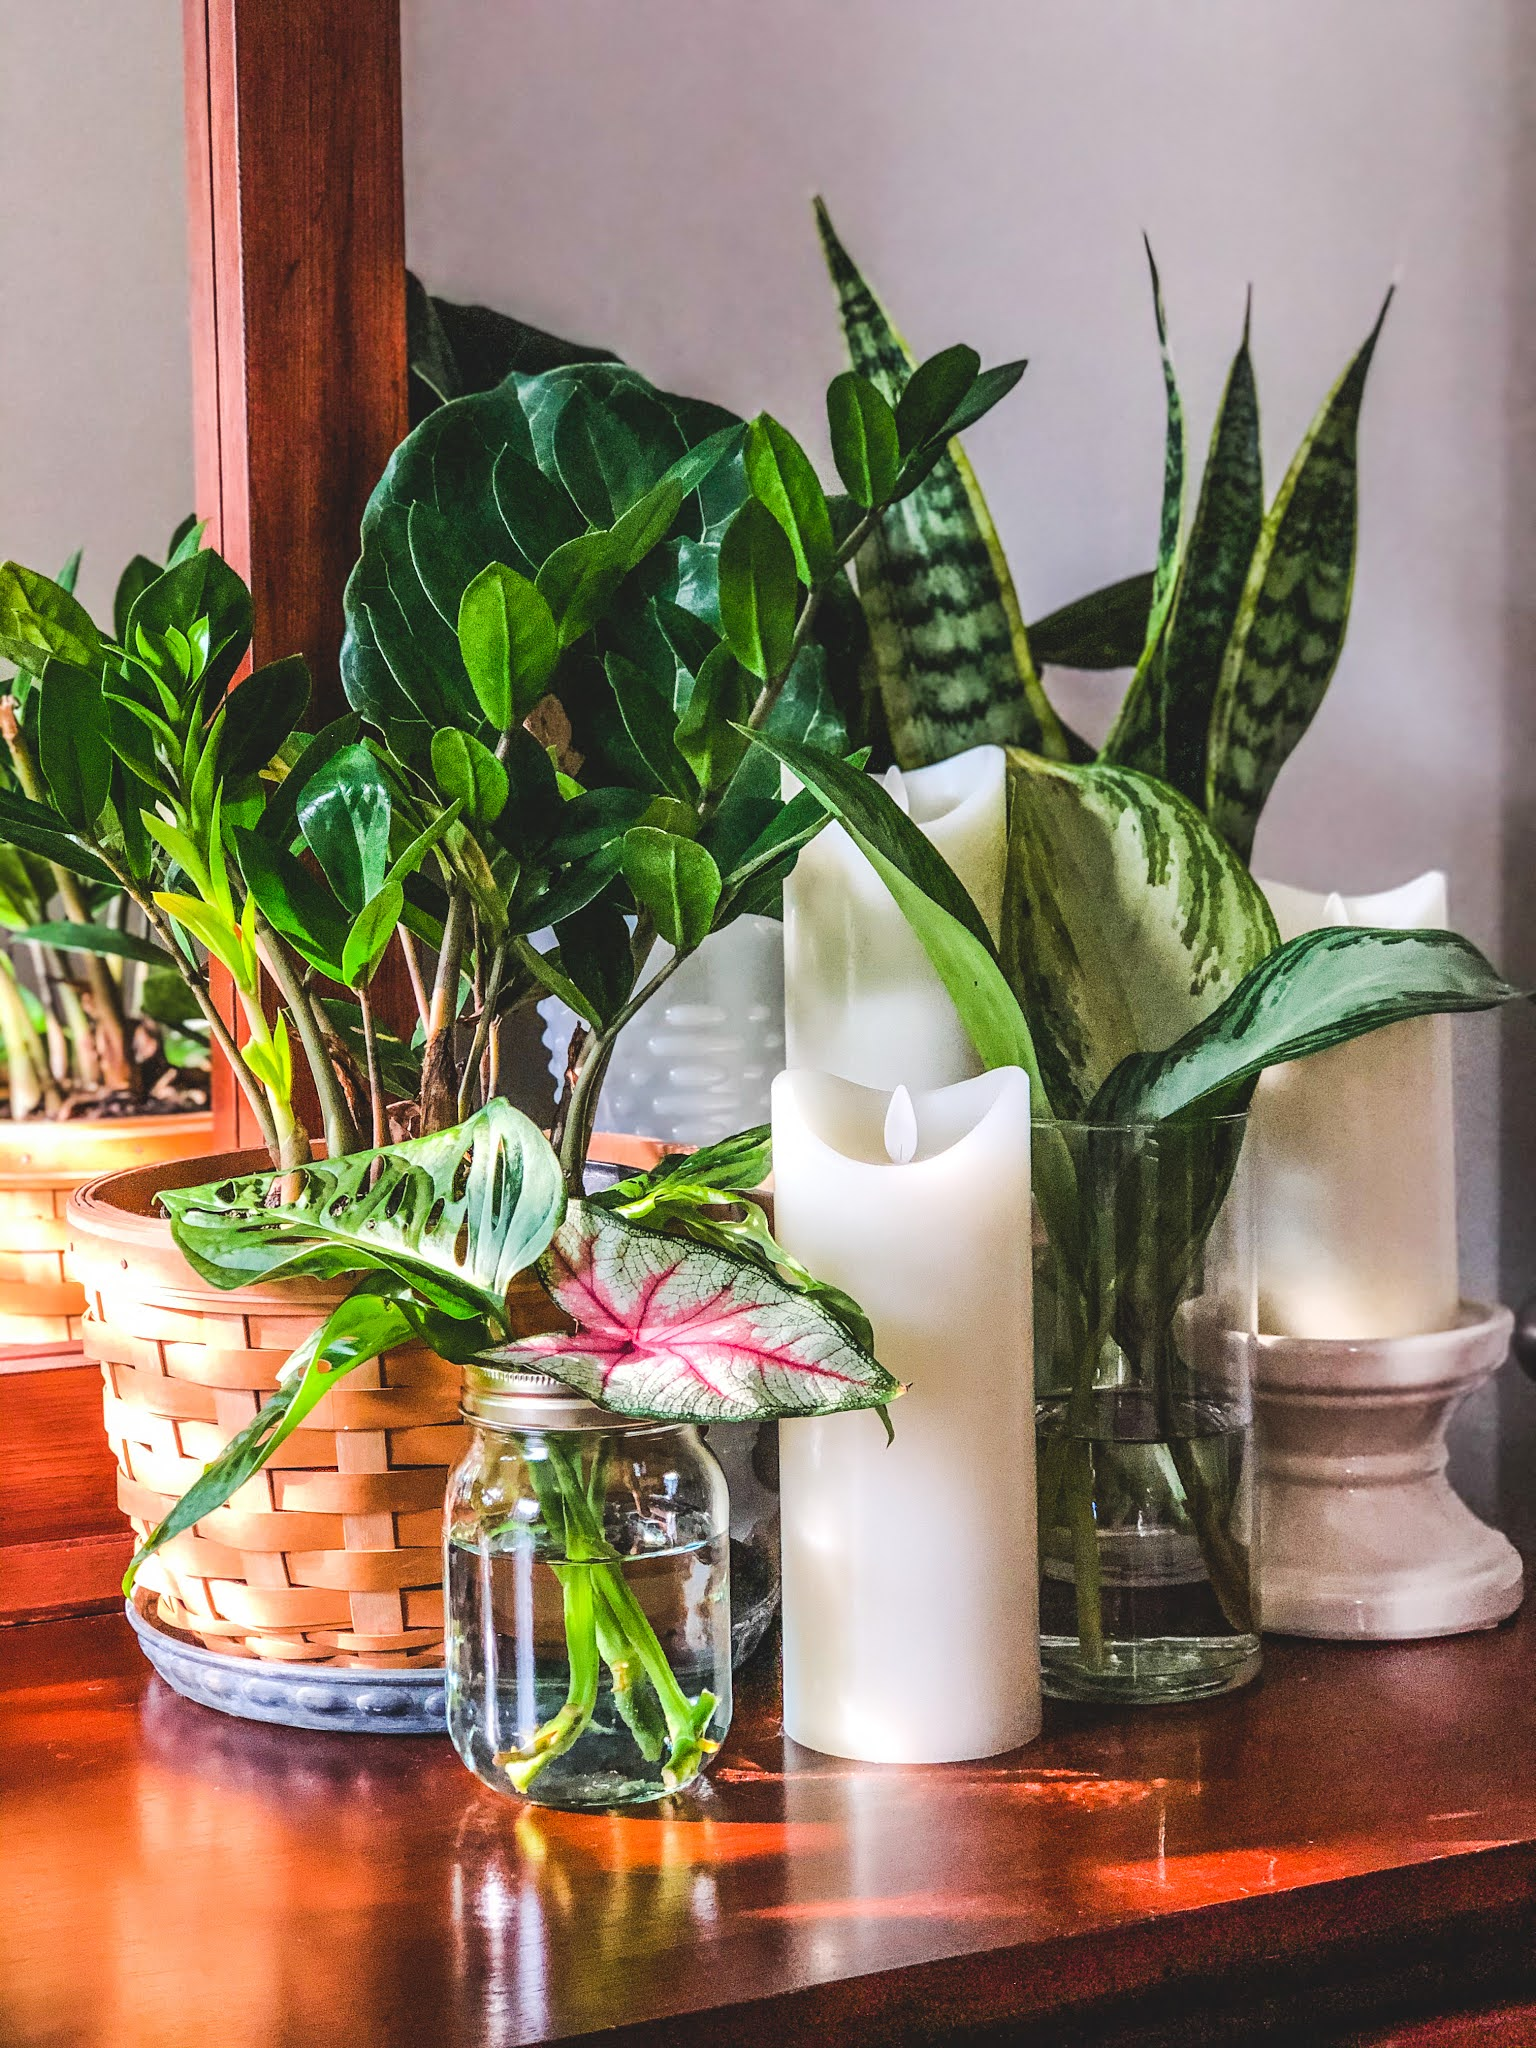 How to propagate plants at home